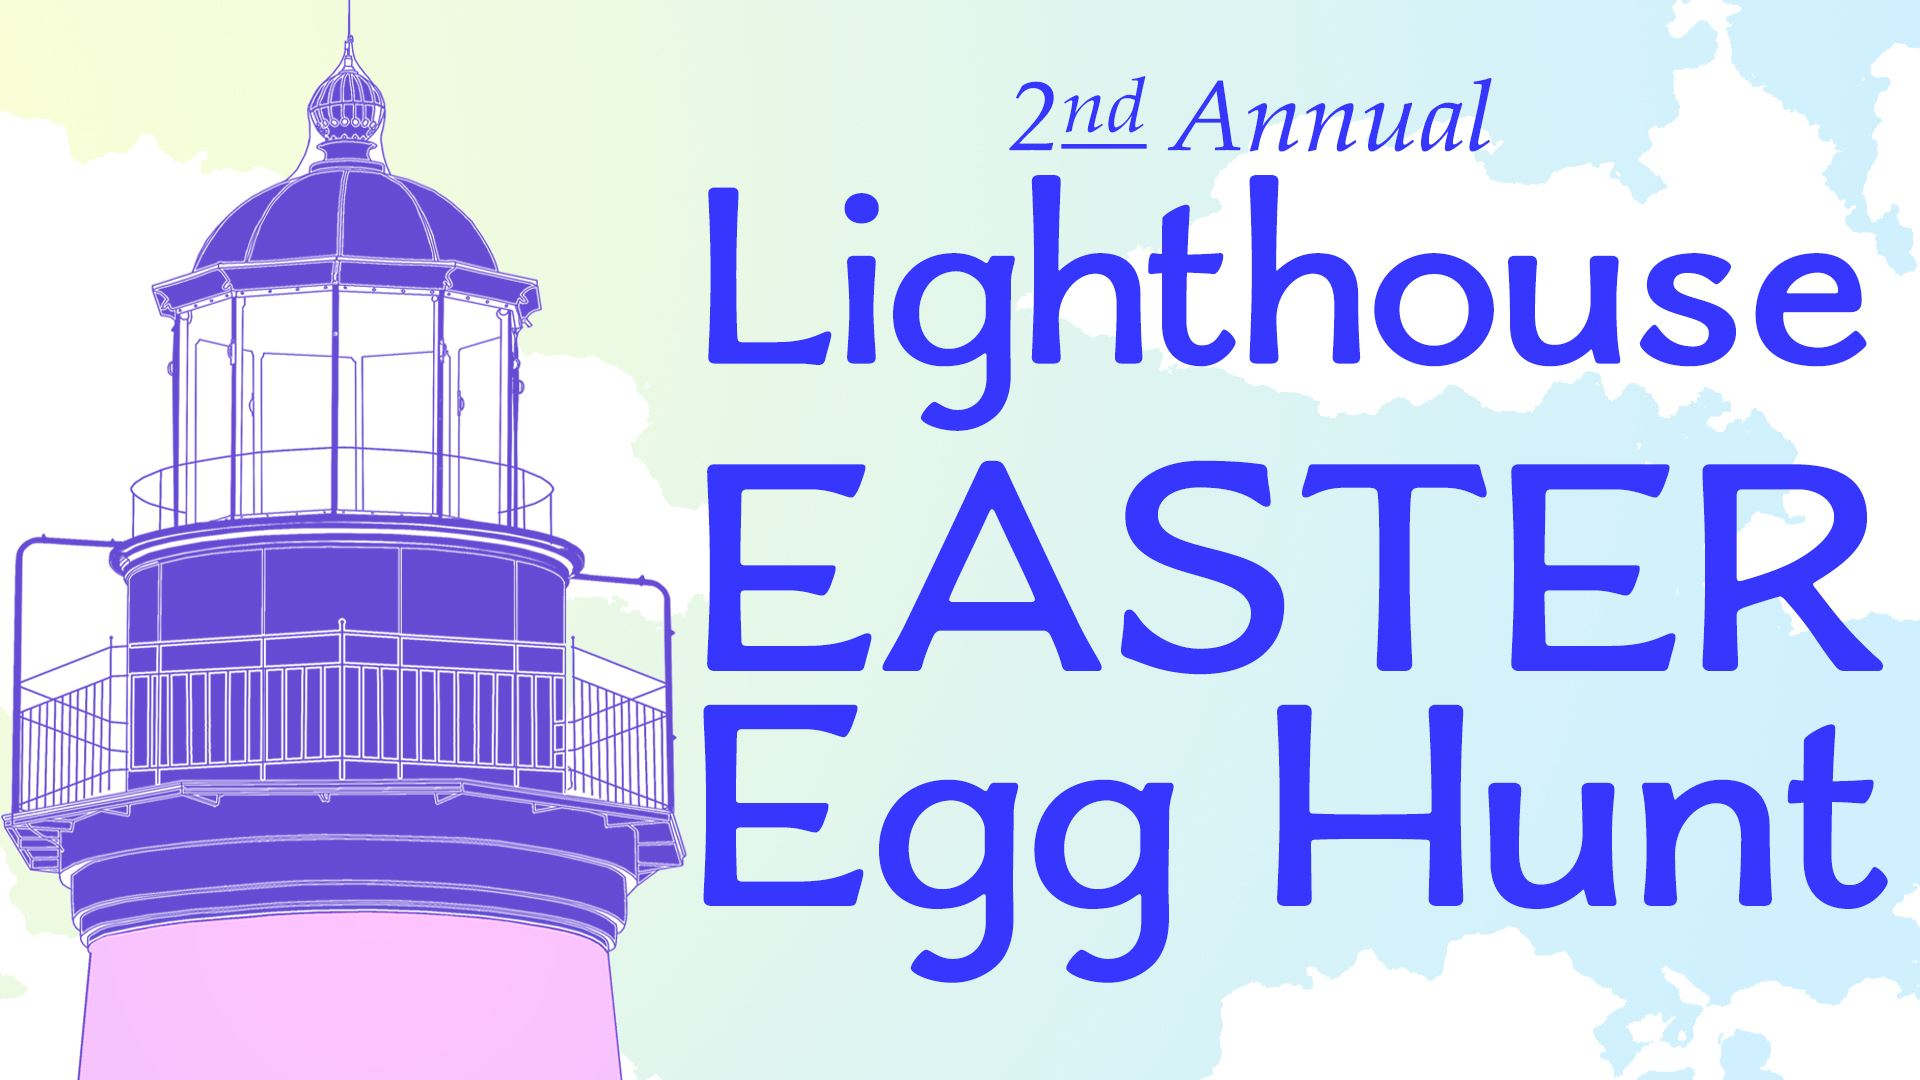 The City of Port Isabel is sponsoring the 2nd Annual Lighthouse Easter Egg Hunt on the grounds of th